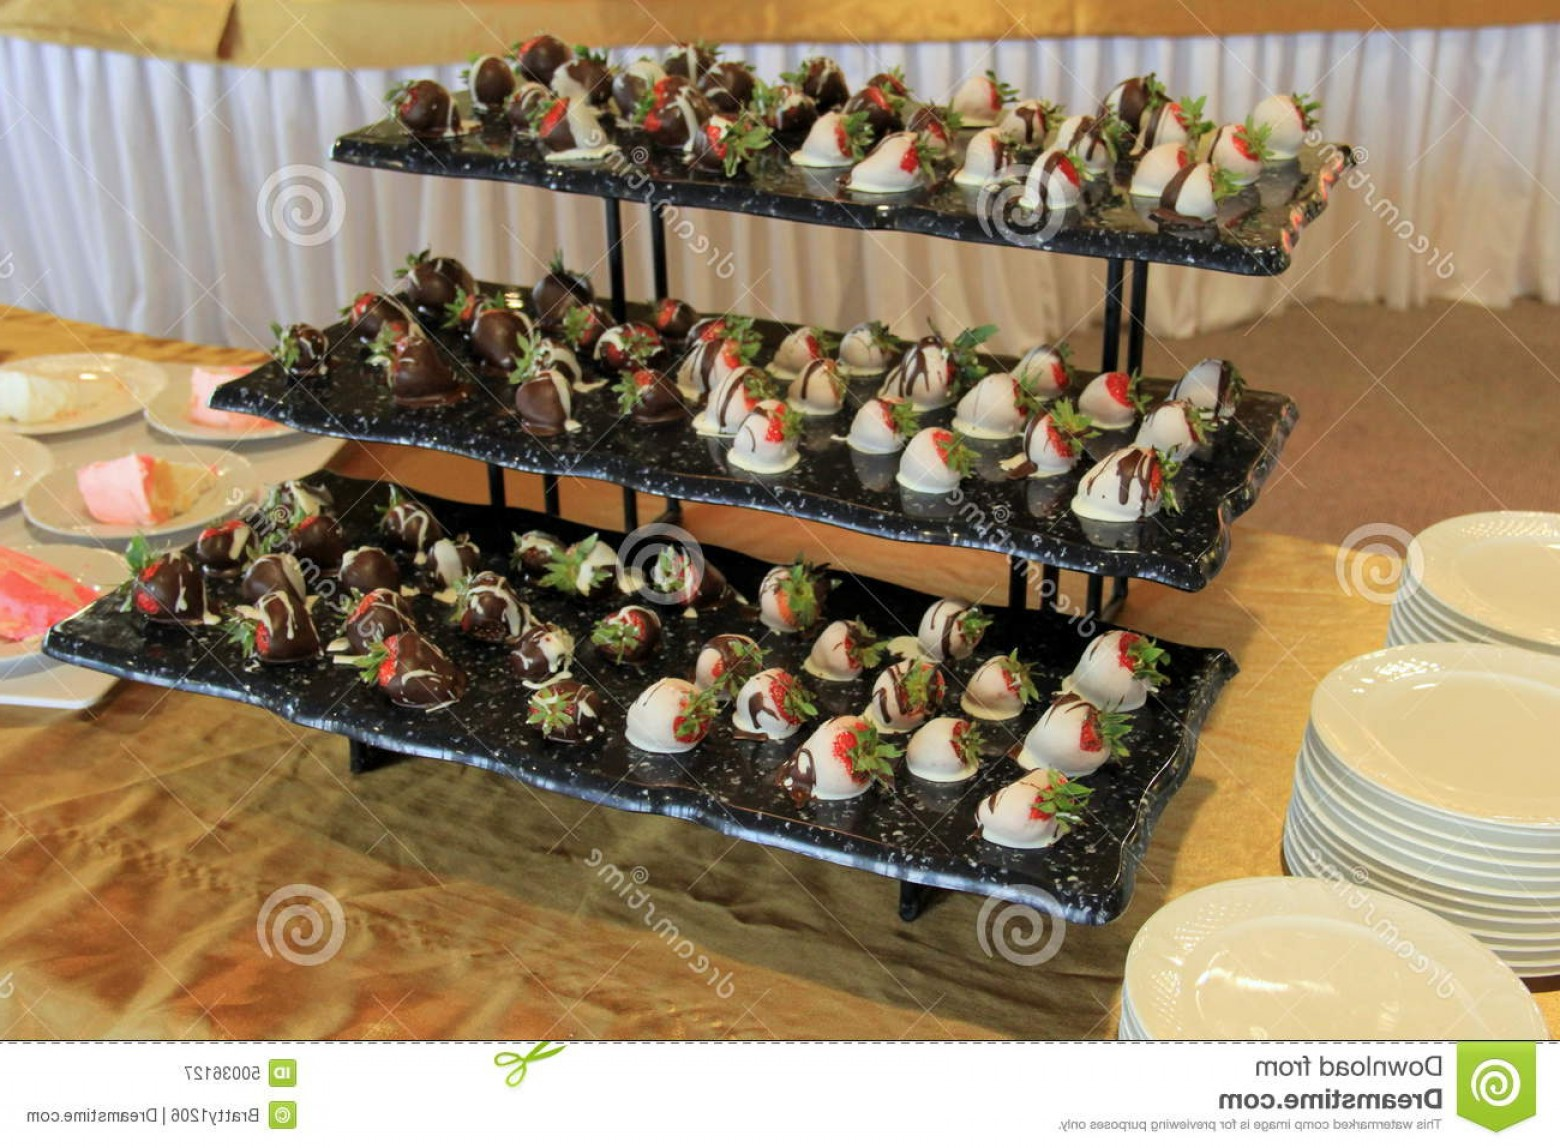 Vector 3 Tier Tray: Stock Photo Three Tier Tray Chocolate Dipped Berries Covered Delicious Strawberries Drizzled White Milk Dark Set Image